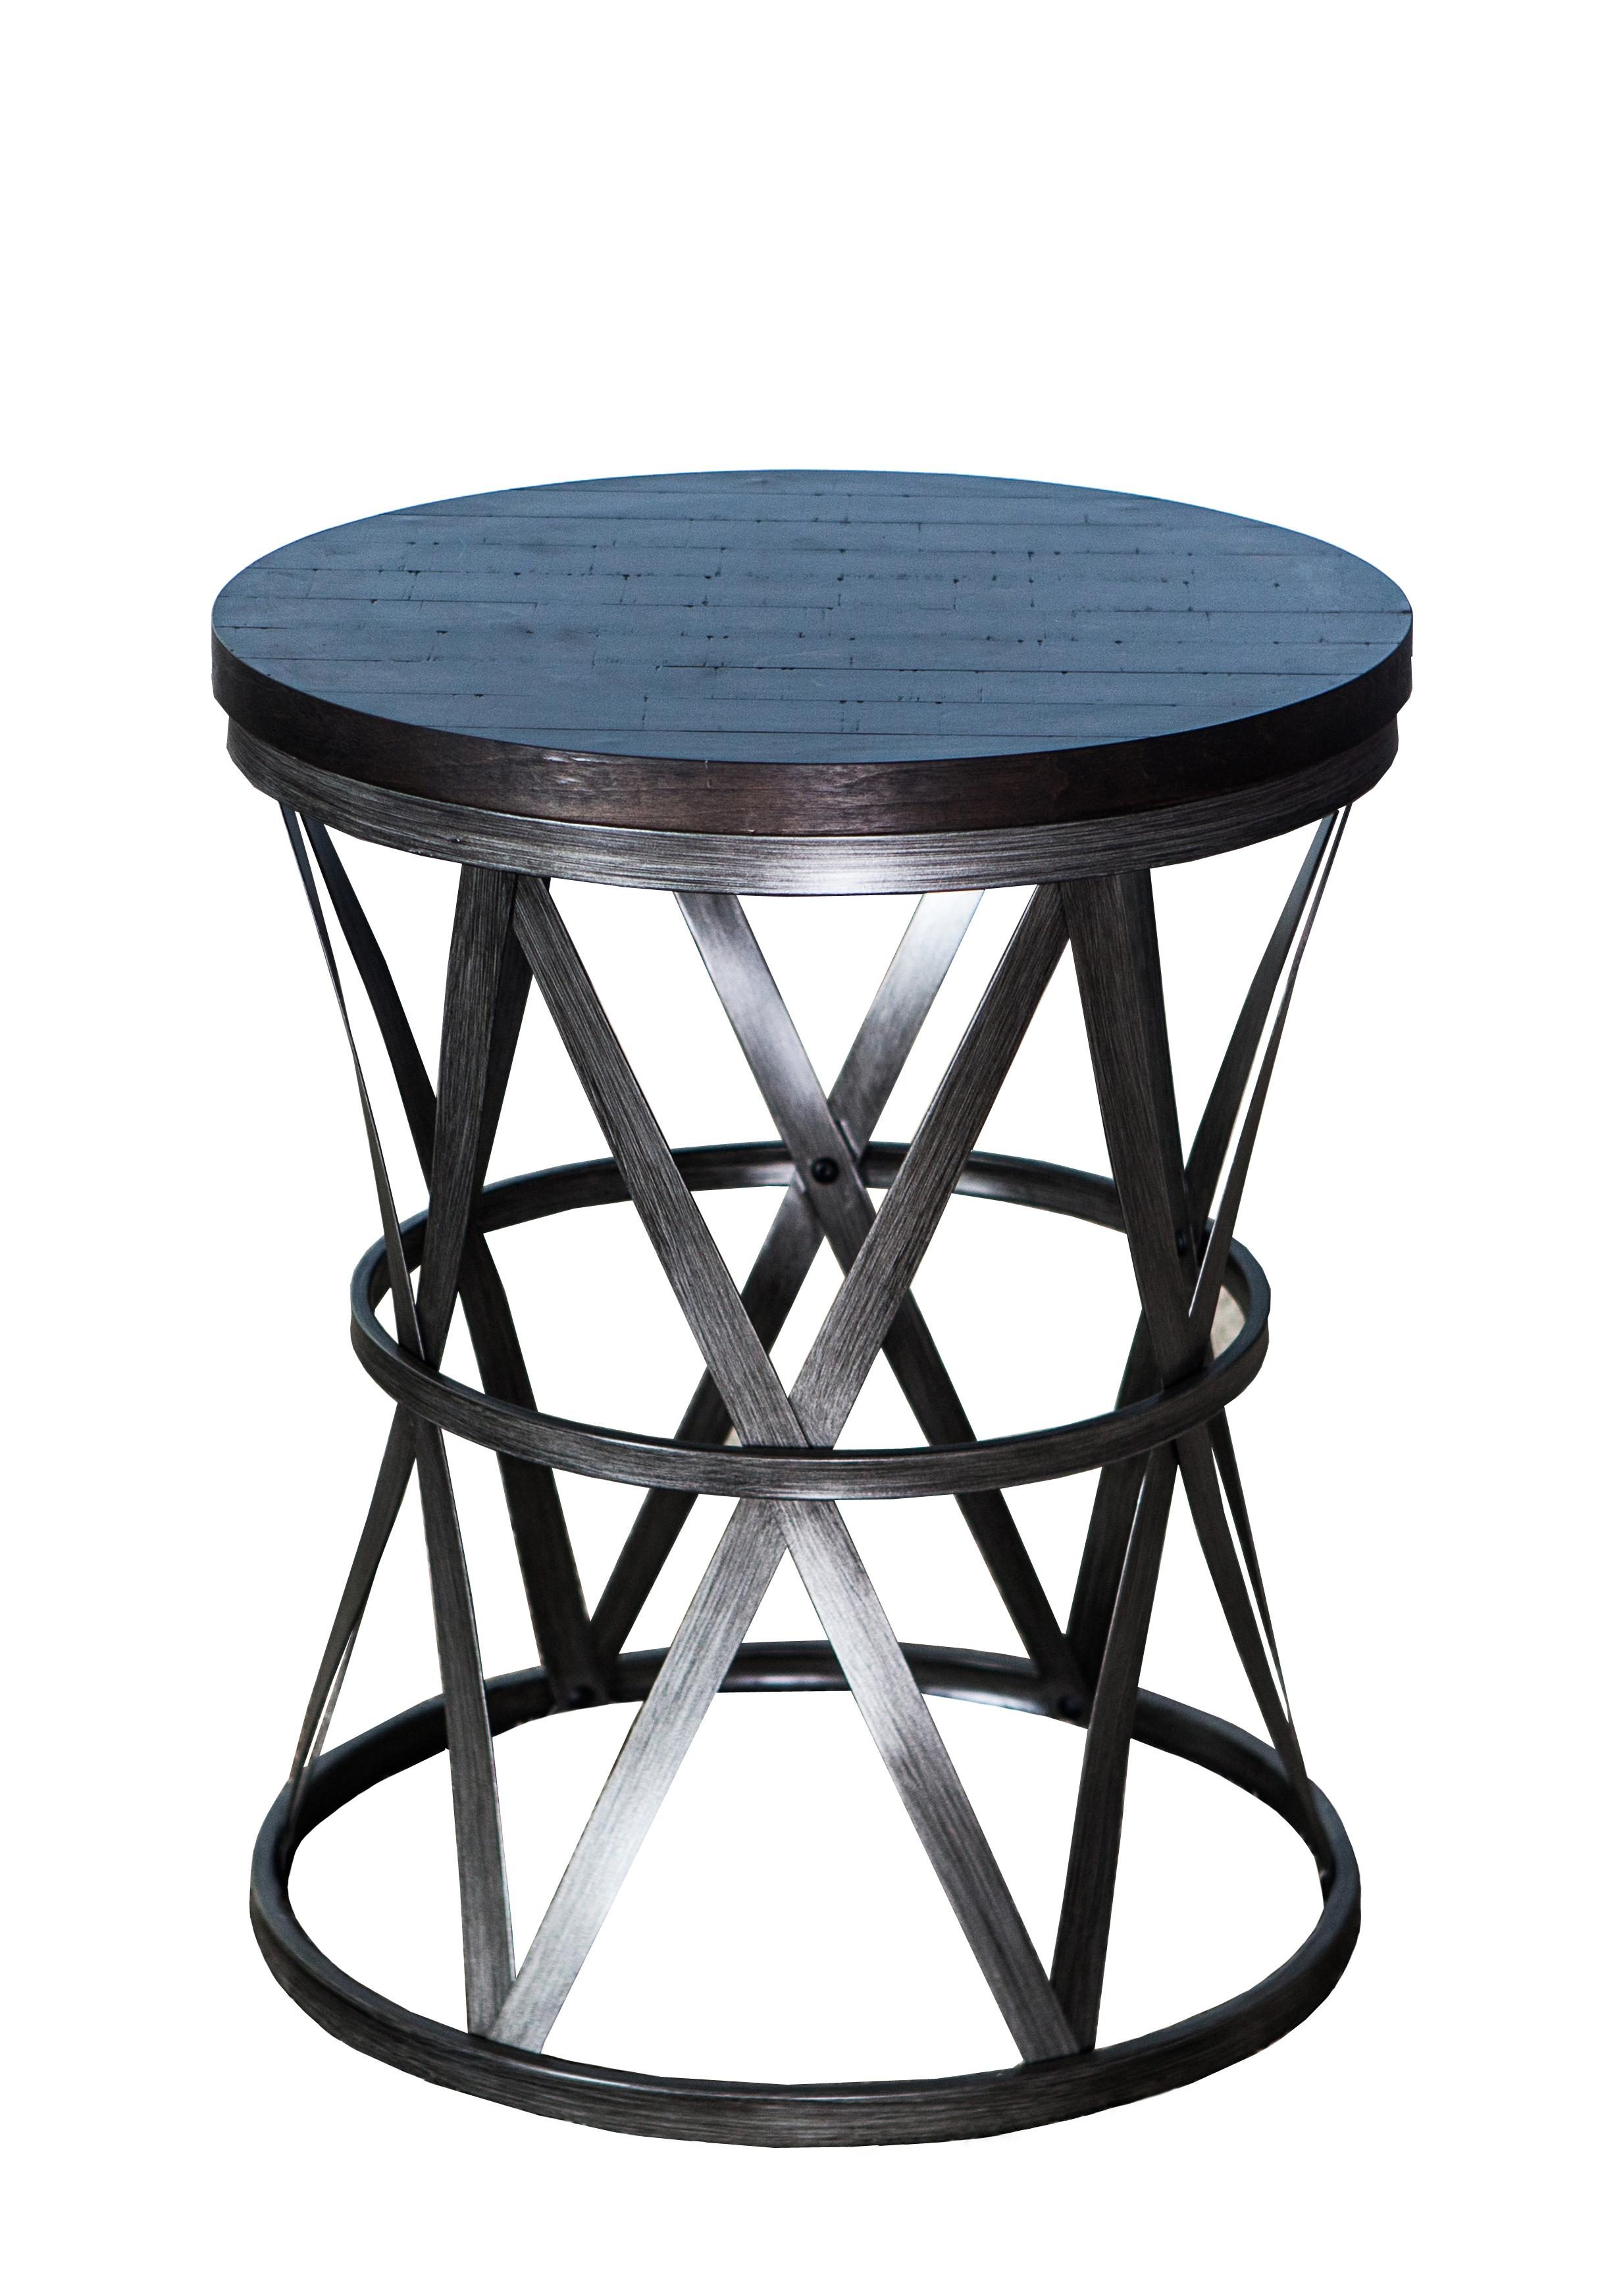 Lane Furniture Tobacco Metal Round Barrel Table The Classy Home